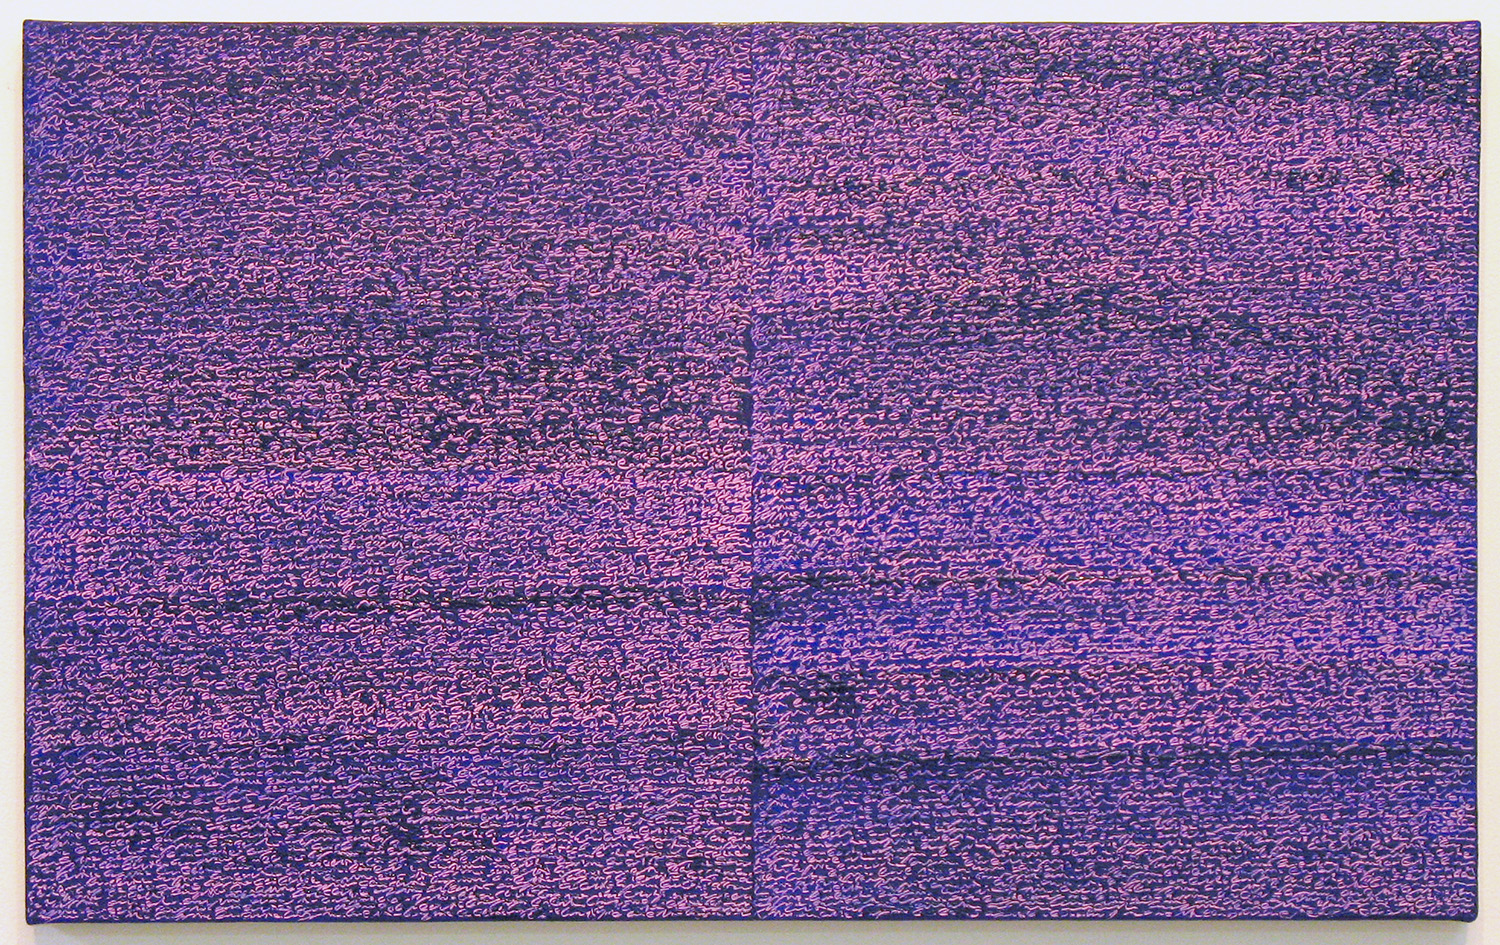 Open Book -pink-violet-<br>oil and amber on canvas over panel, 37 x 60 cm, 2008